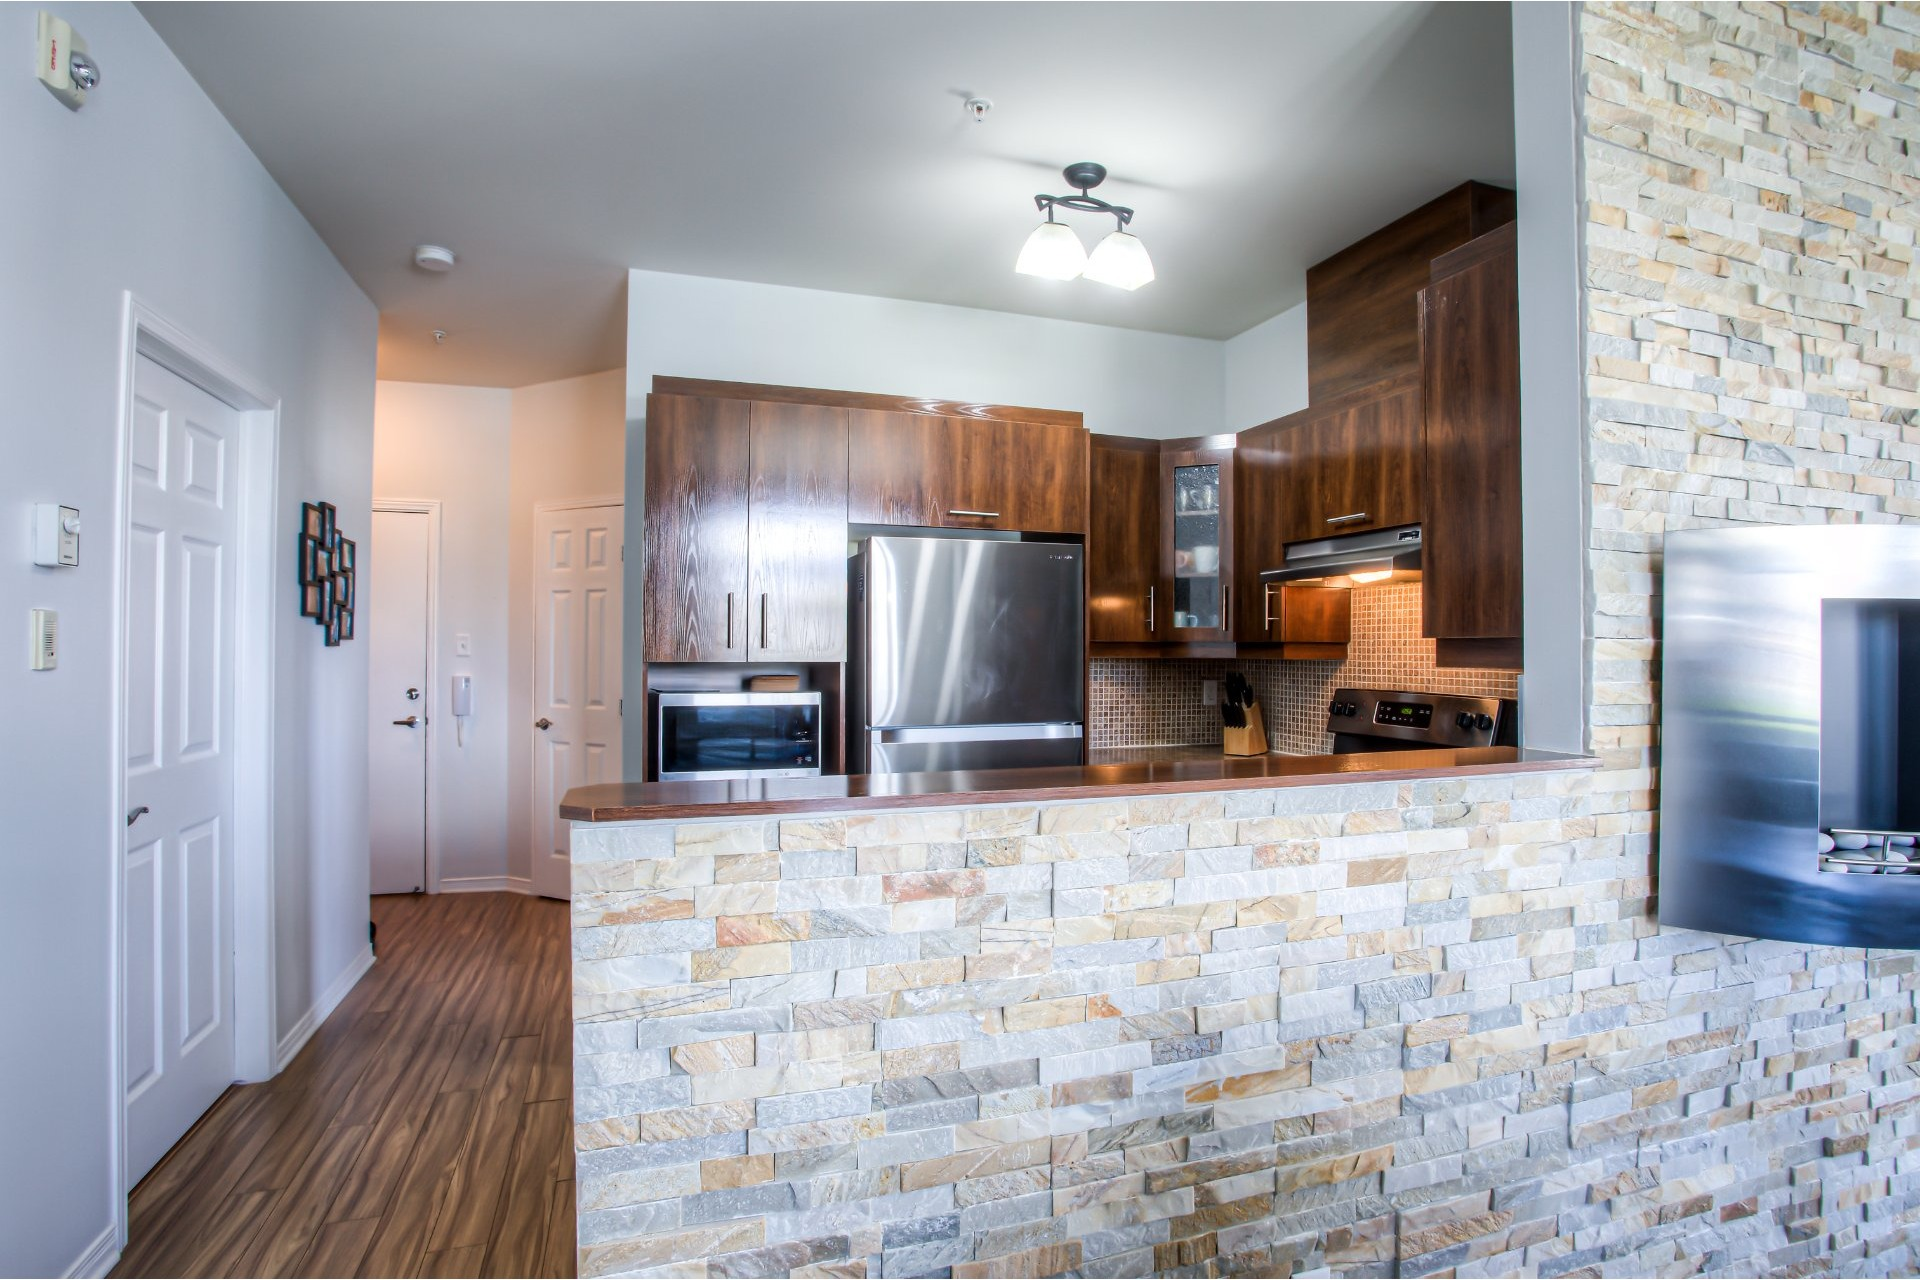 image 7 - Apartment For sale Mascouche - 8 rooms